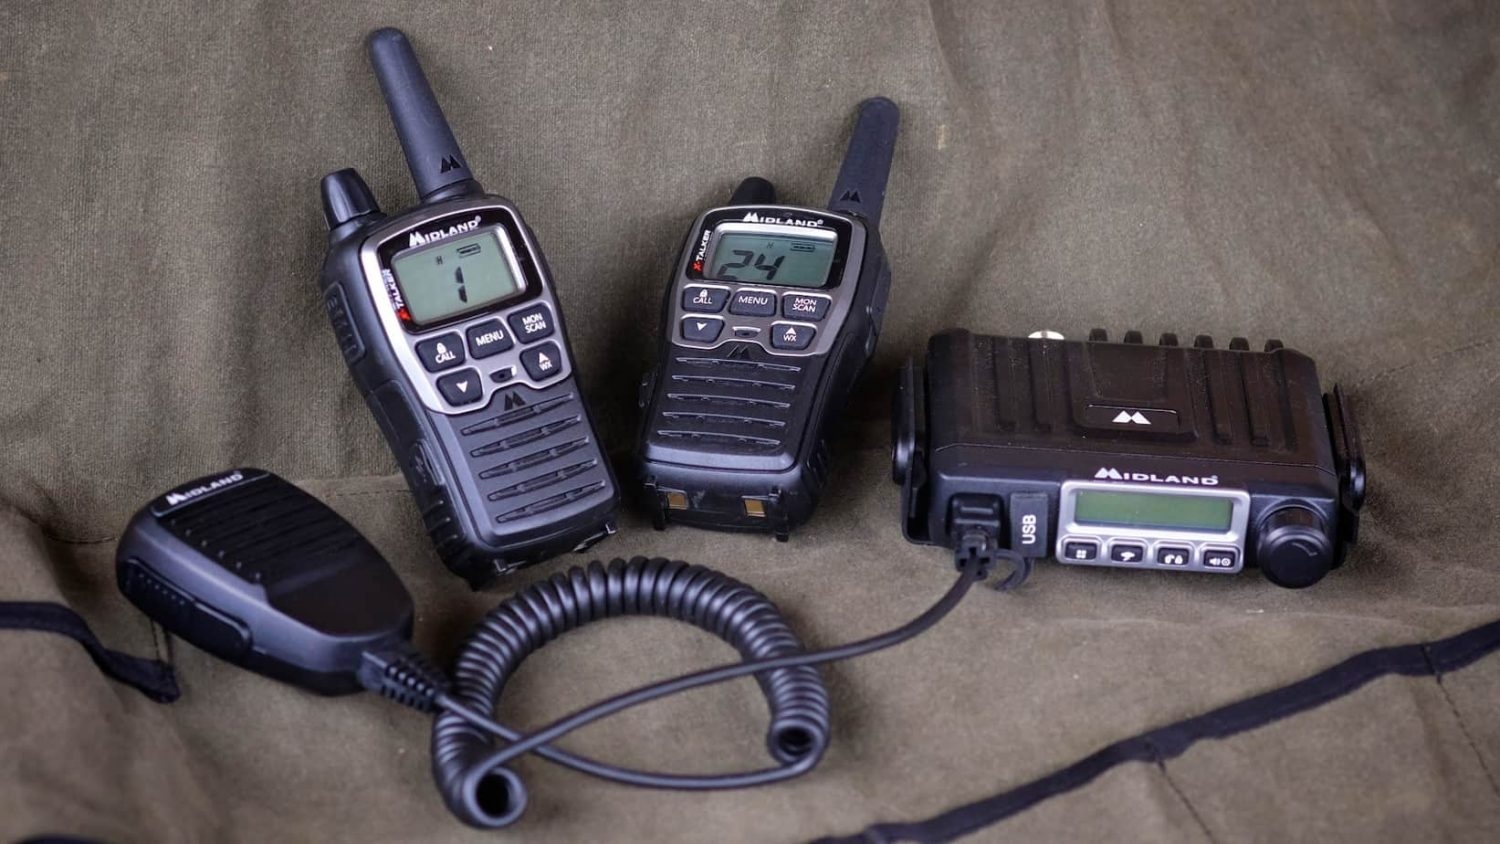 Midland FRS/GMRS Handheld and Dash Mount Radios – Expedition